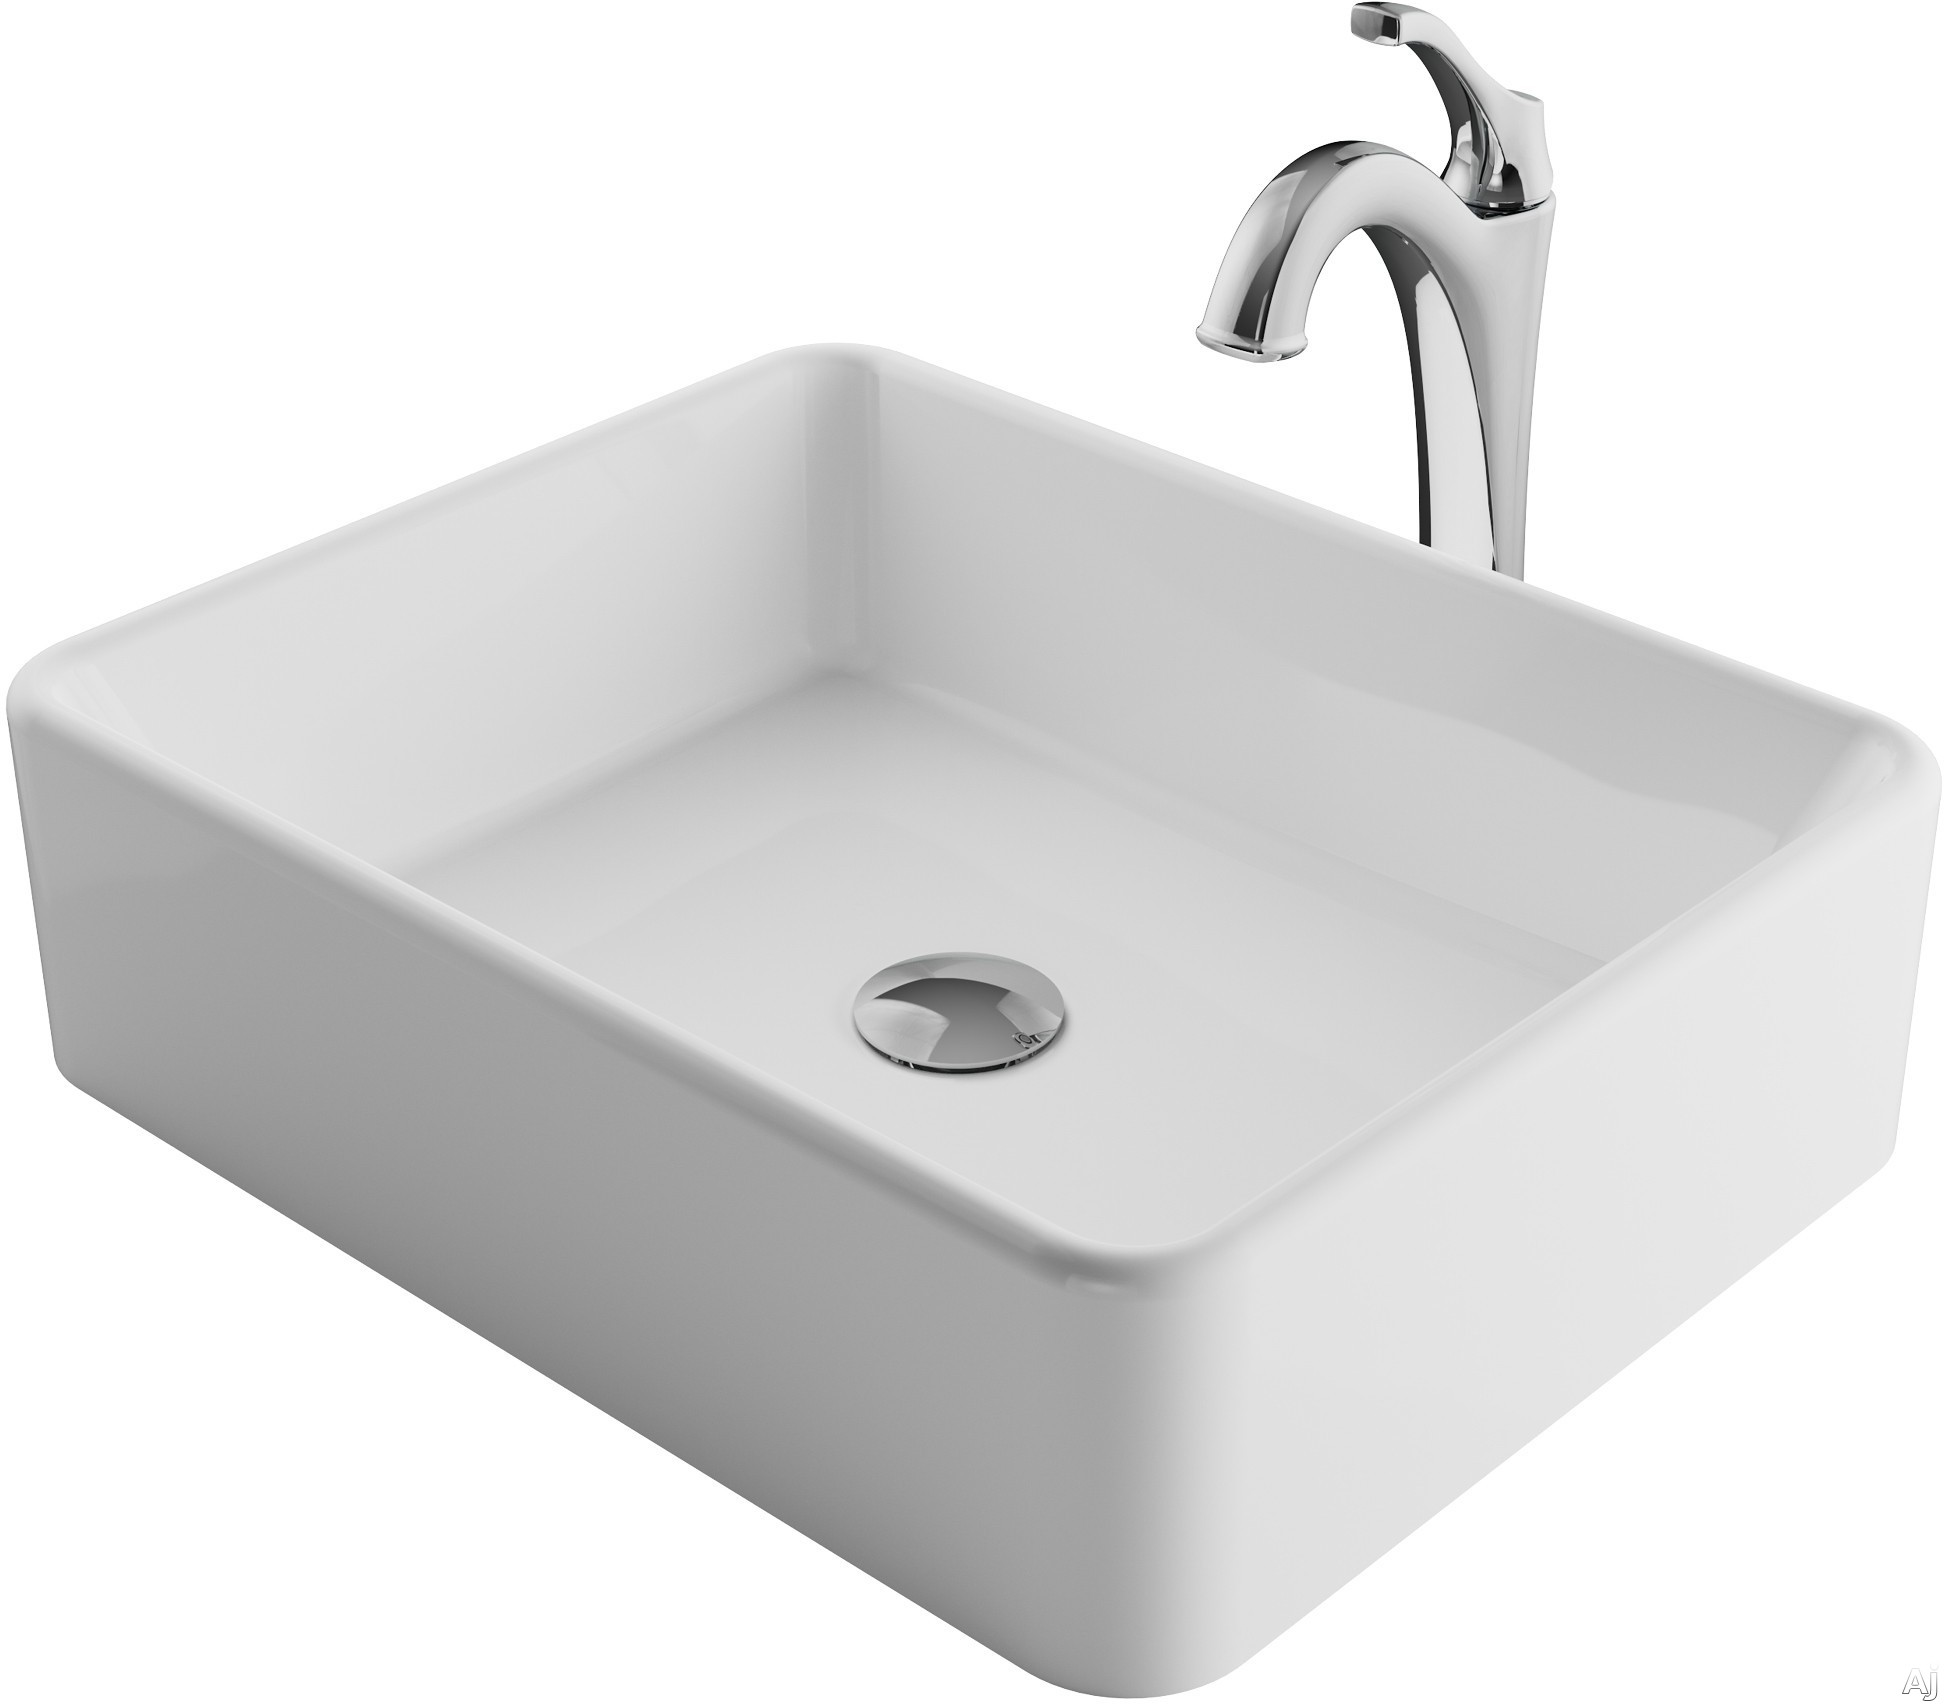 "Kraus Ceramic Series CKCV1211200CH 19 Inch Rectangular Porcelain Ceramic Vessel Sink and Arloâ""¢ Faucet Combo Set with Ceramic Vessel Sink, Solid Brass Faucet and Easy Clean: Chrome Faucet"